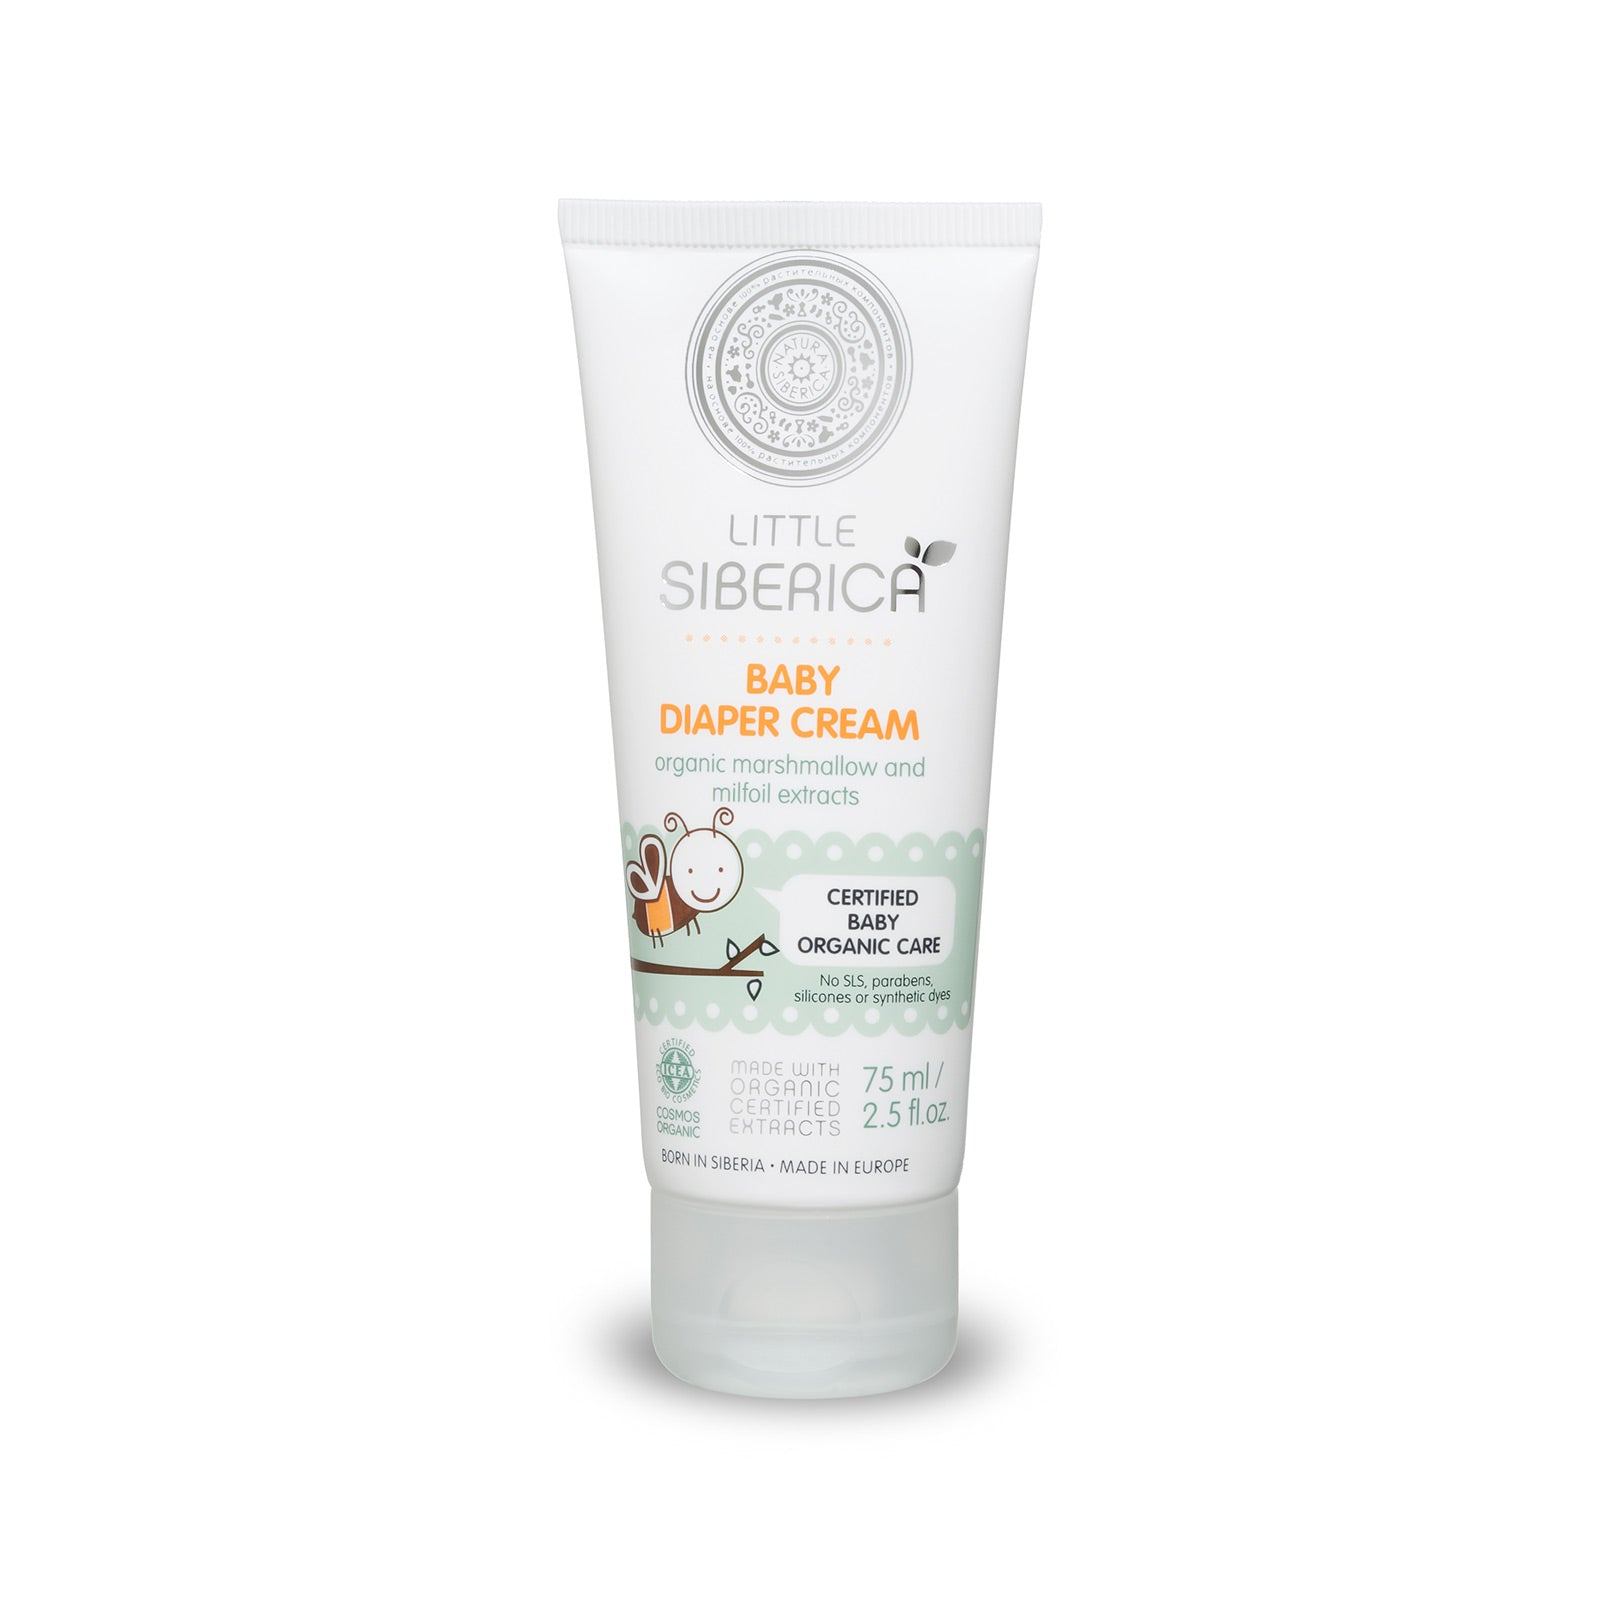 Little Siberica Baby Diaper Cream, 75 ml